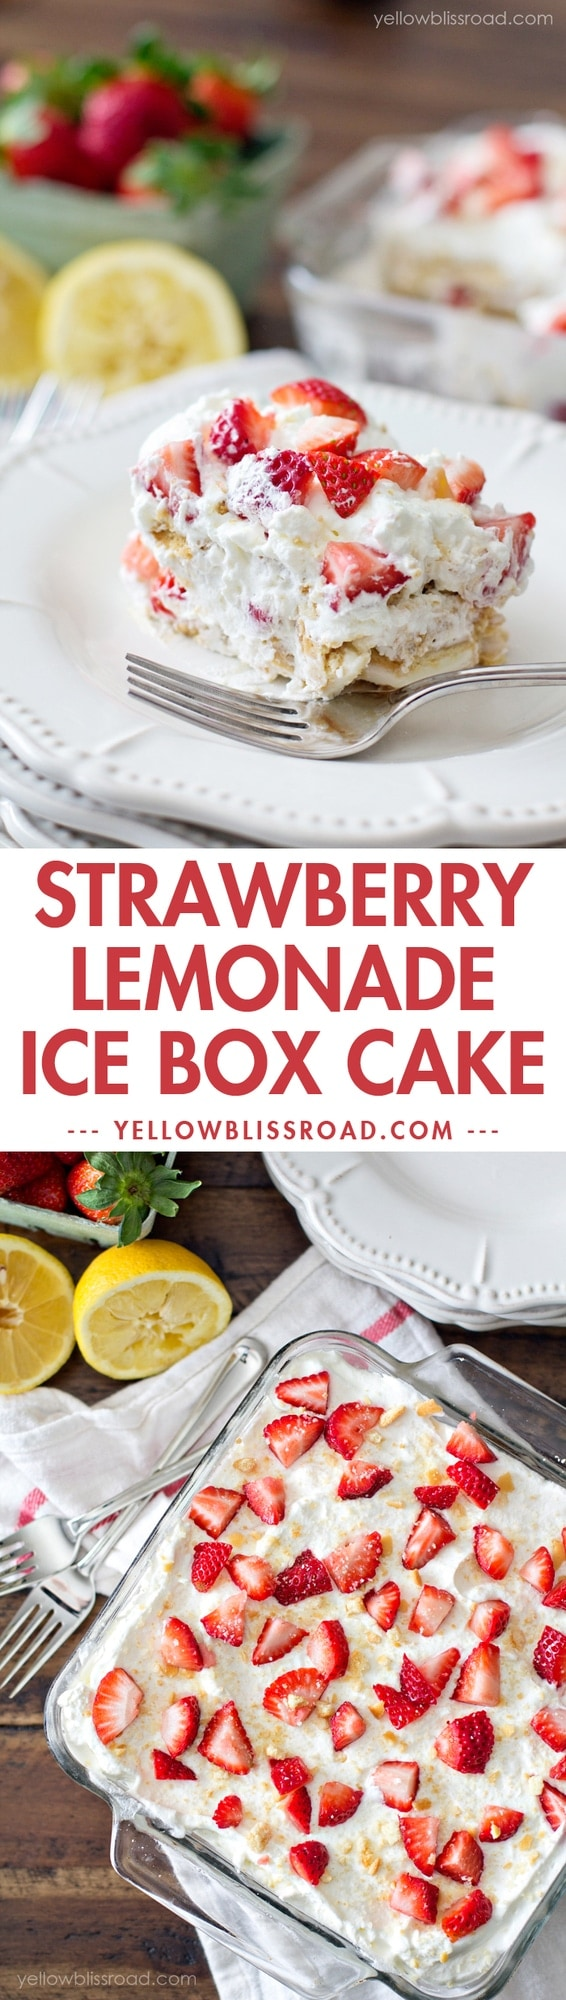 Strawberry Lemonade Ice Box Cake with Golden Oreos